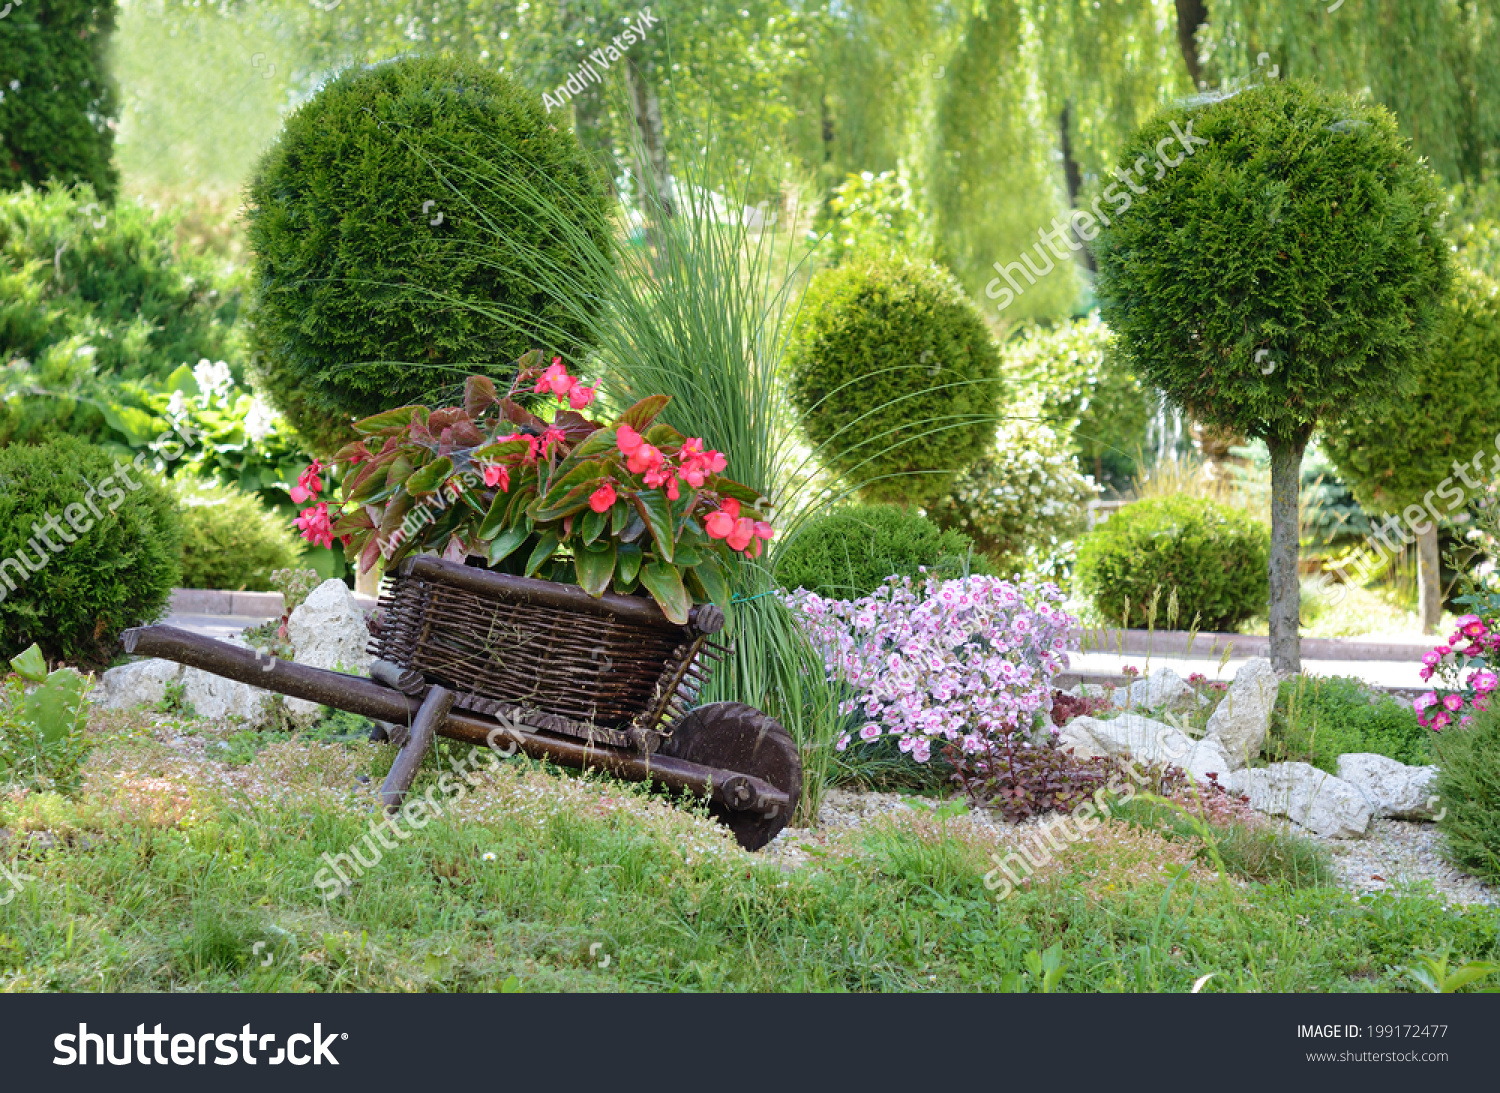 Red Flowers Garden On Small Decorative Stock Photo (Royalty Free ...